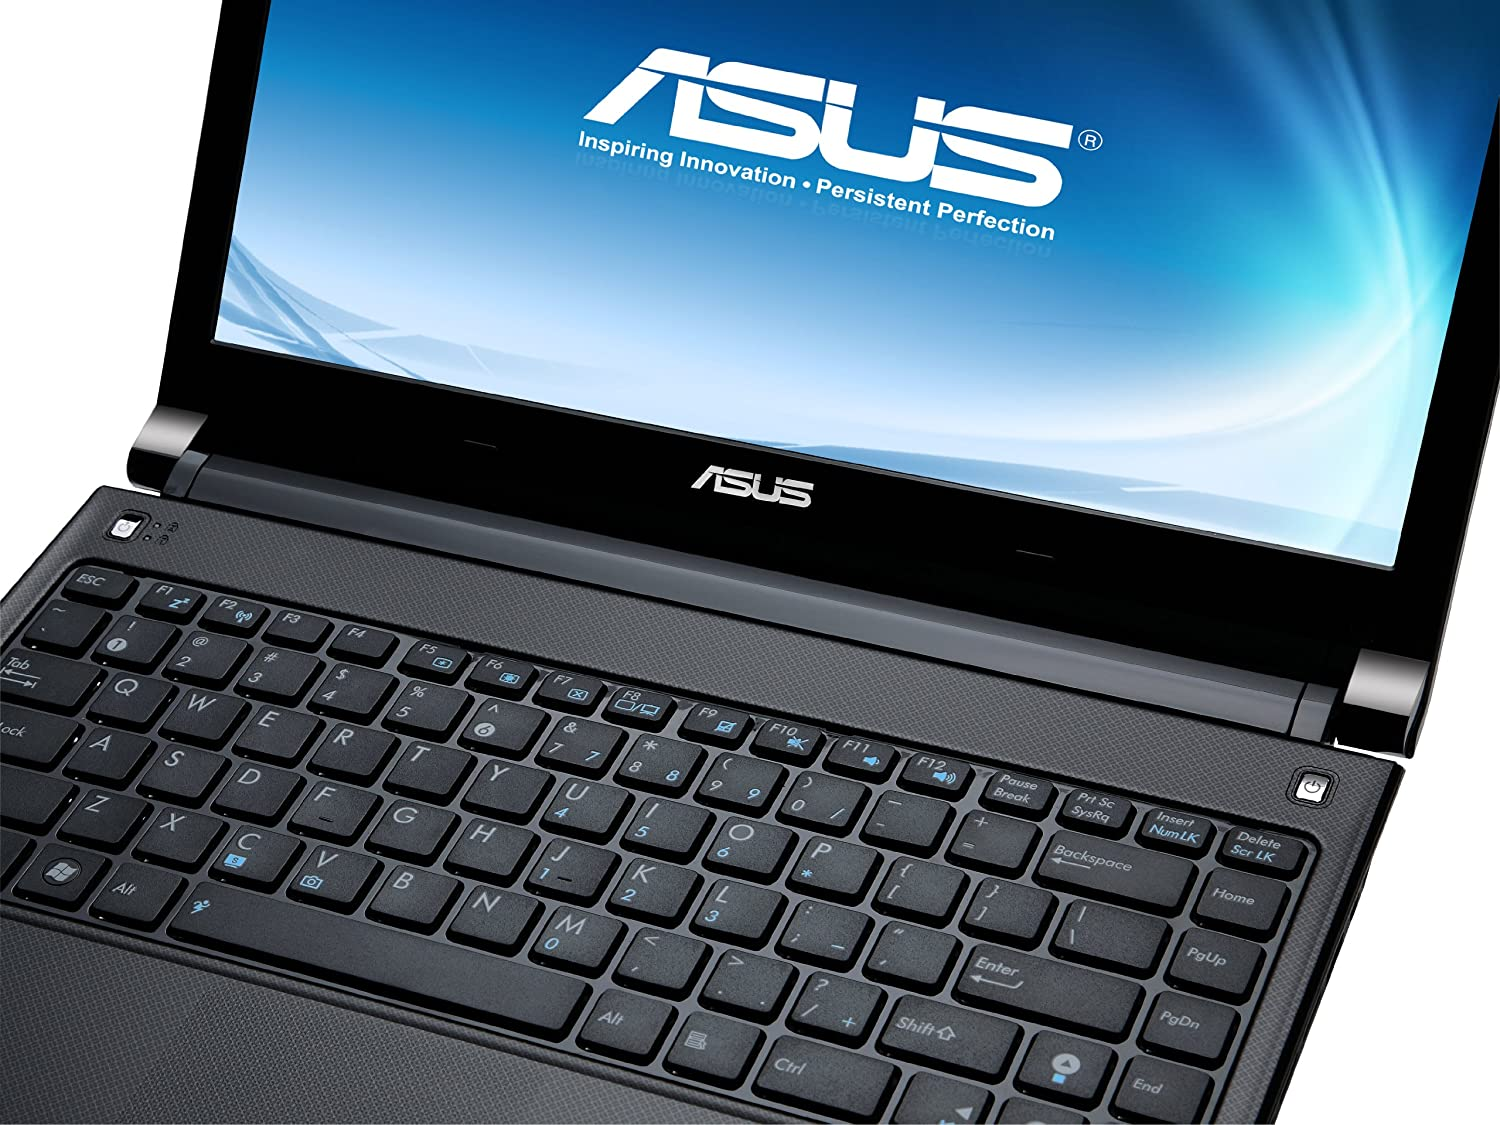 Asus U35F Notebook Camera Drivers for Windows Download